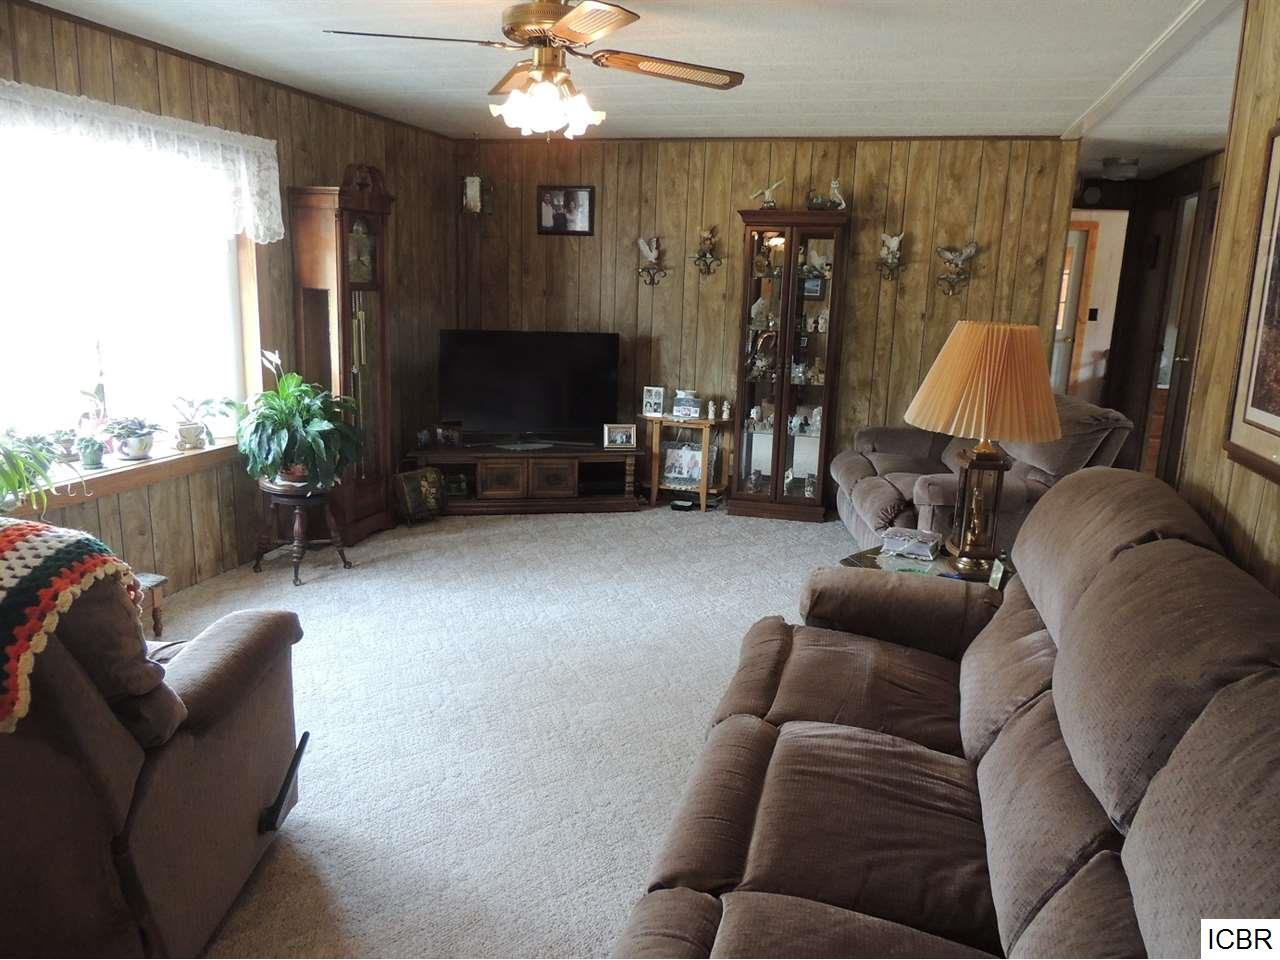 singles in talmoon Find talmoon, mn homes for sale, real estate, apartments, condos & townhomes with coldwell banker burnet.